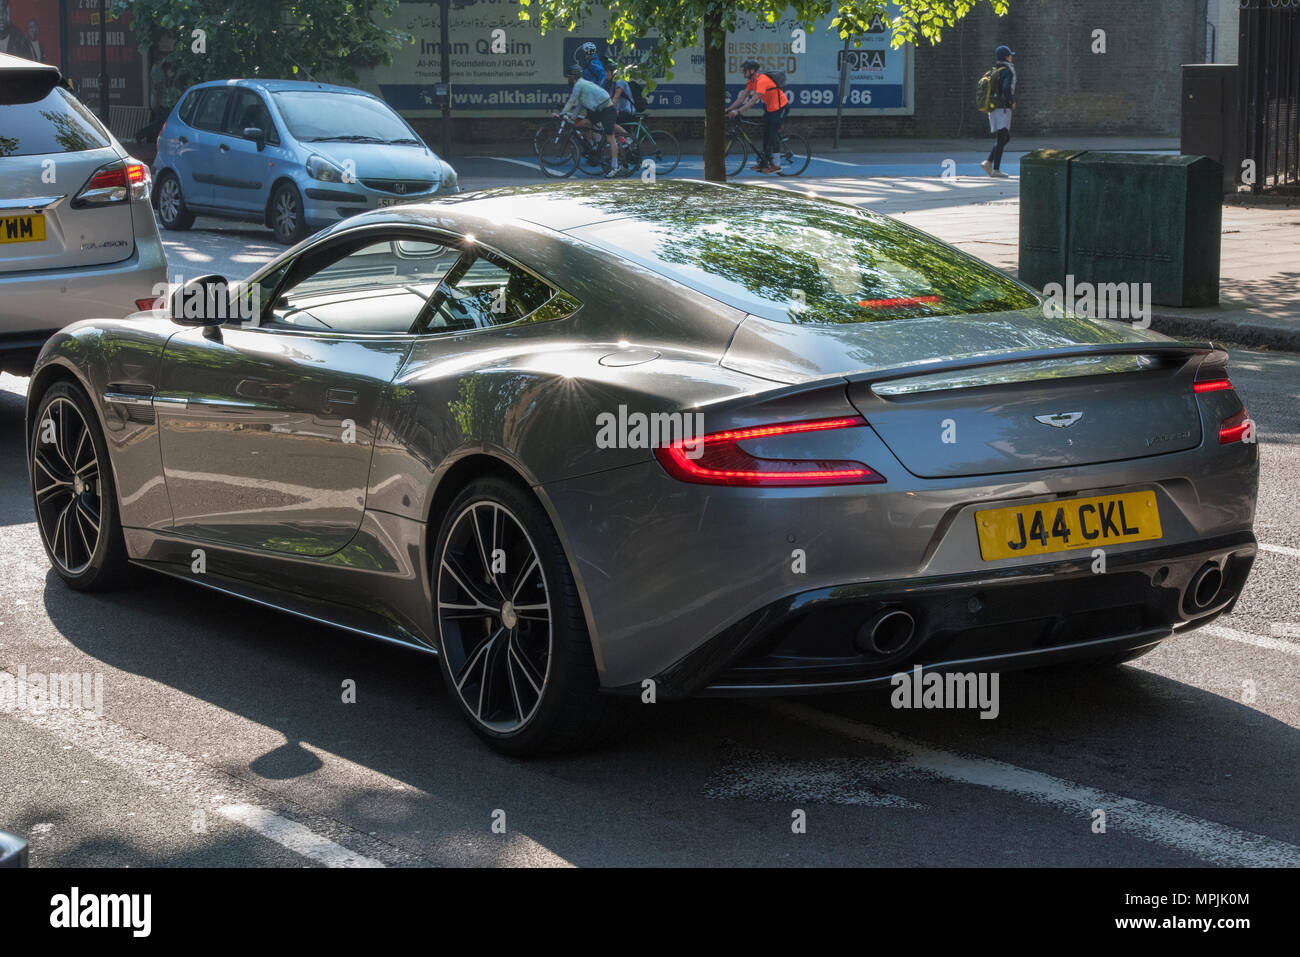 A Top Of The Range Aston Martin Sports Car On A London Street Fast And Powerful Racing Pedigree Sports Cars Mad In England Stock Photo Alamy